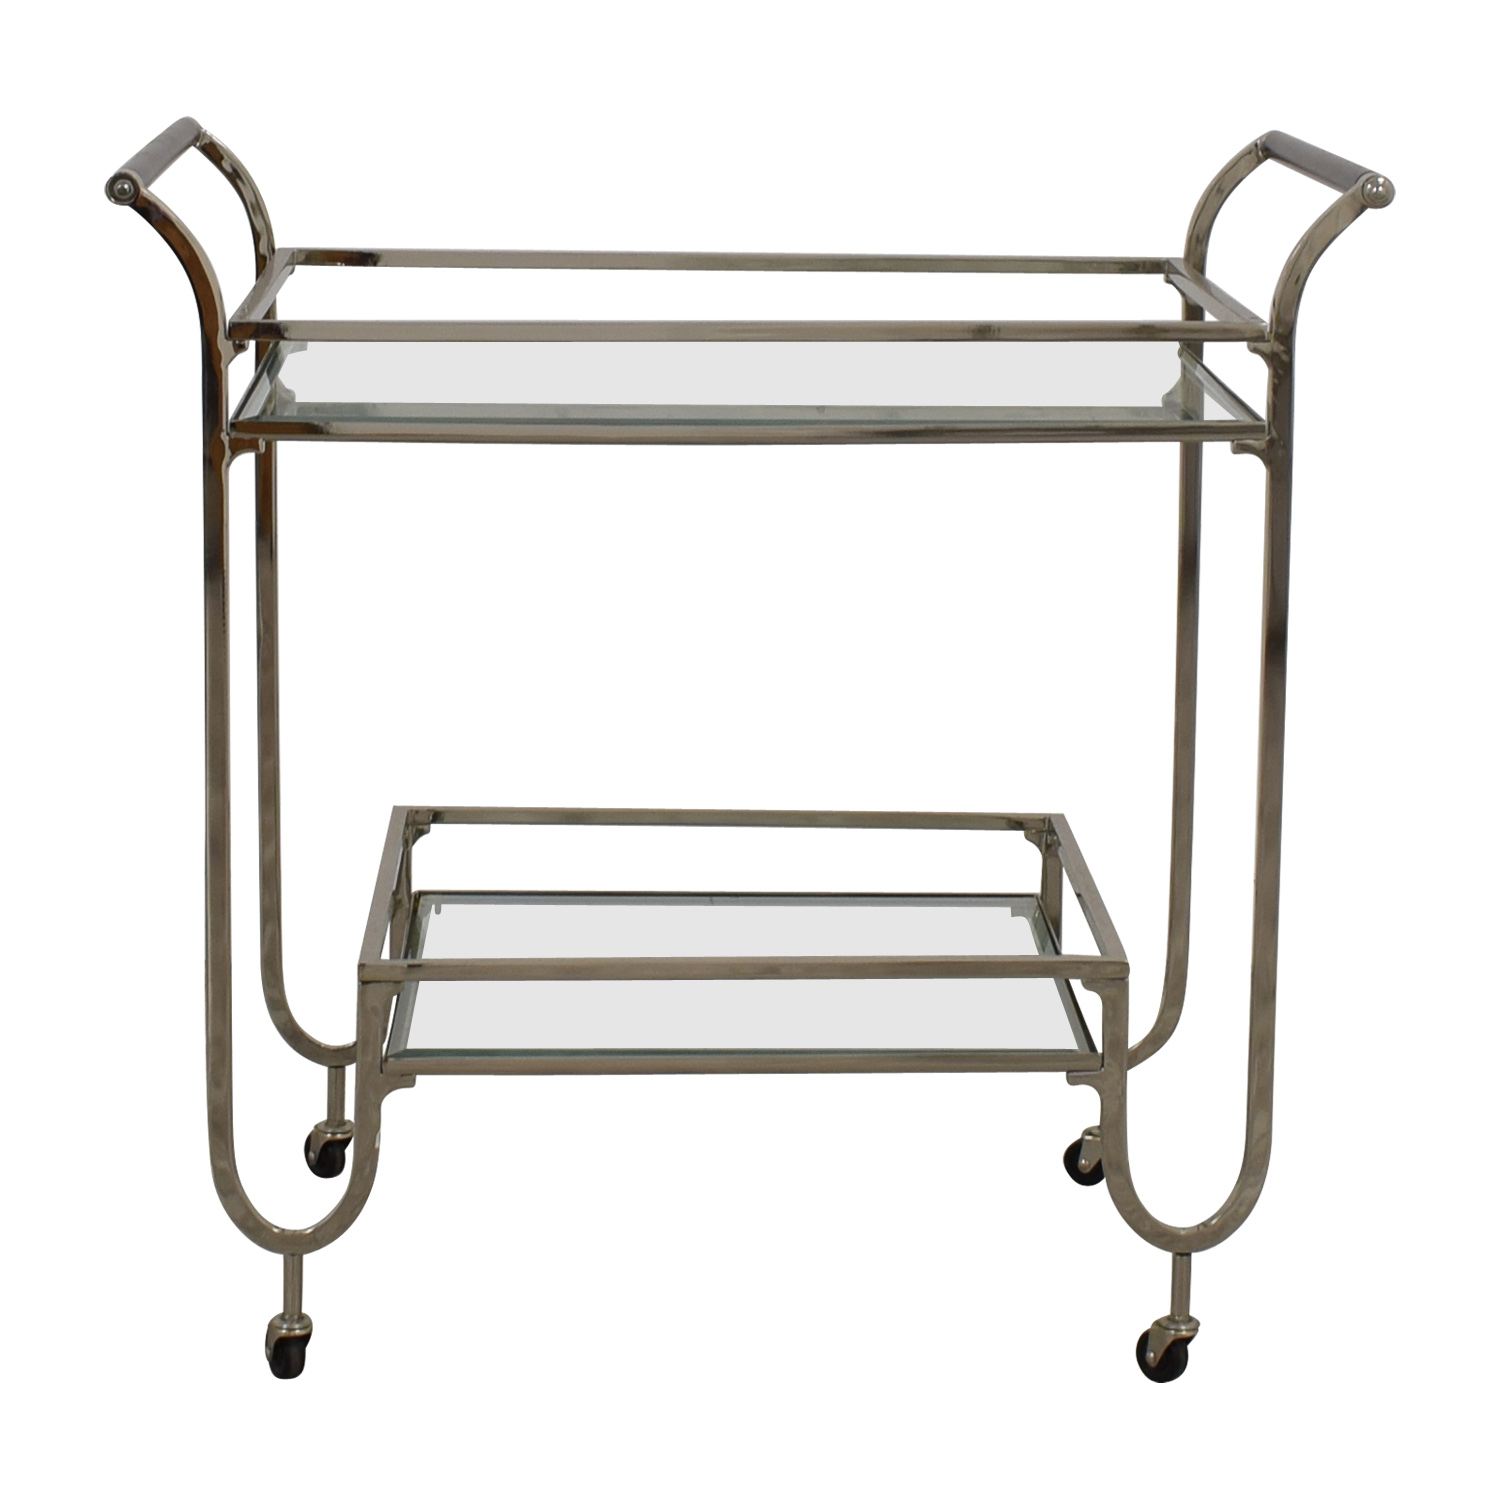 Restoration Hardware Restoration Hardware Glass and Chrome Bar Cart discount